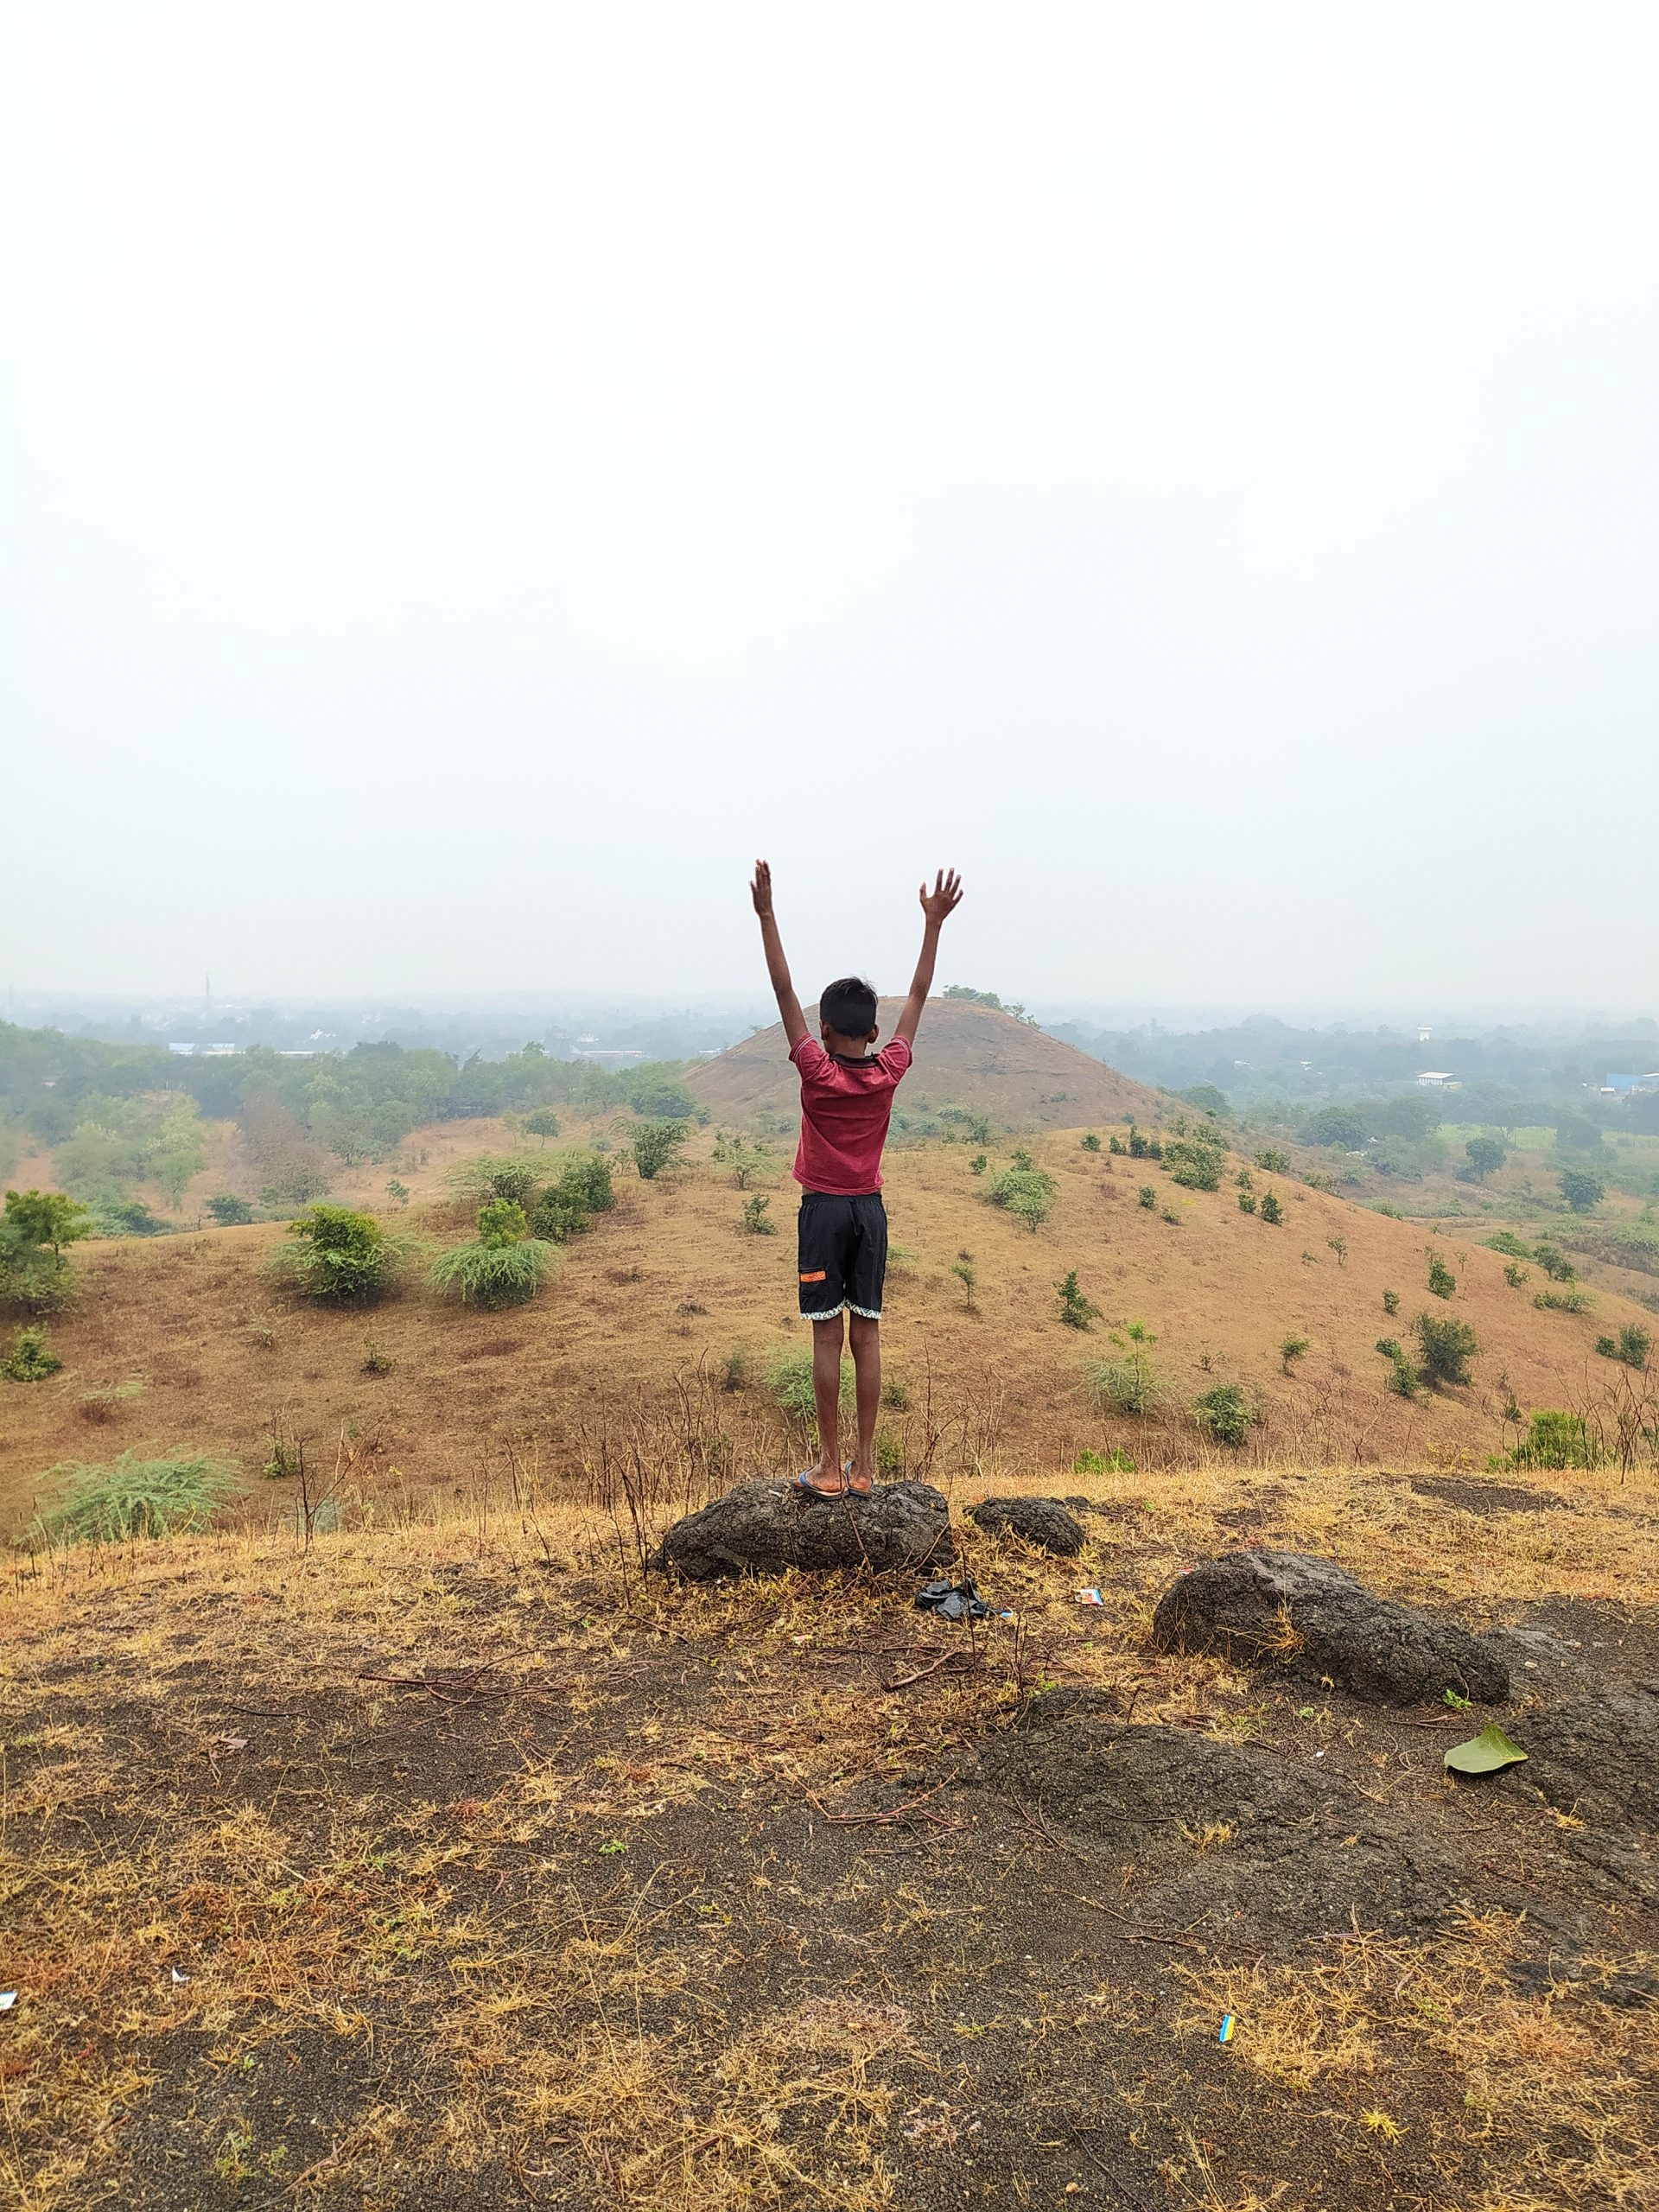 A child on a mountain top